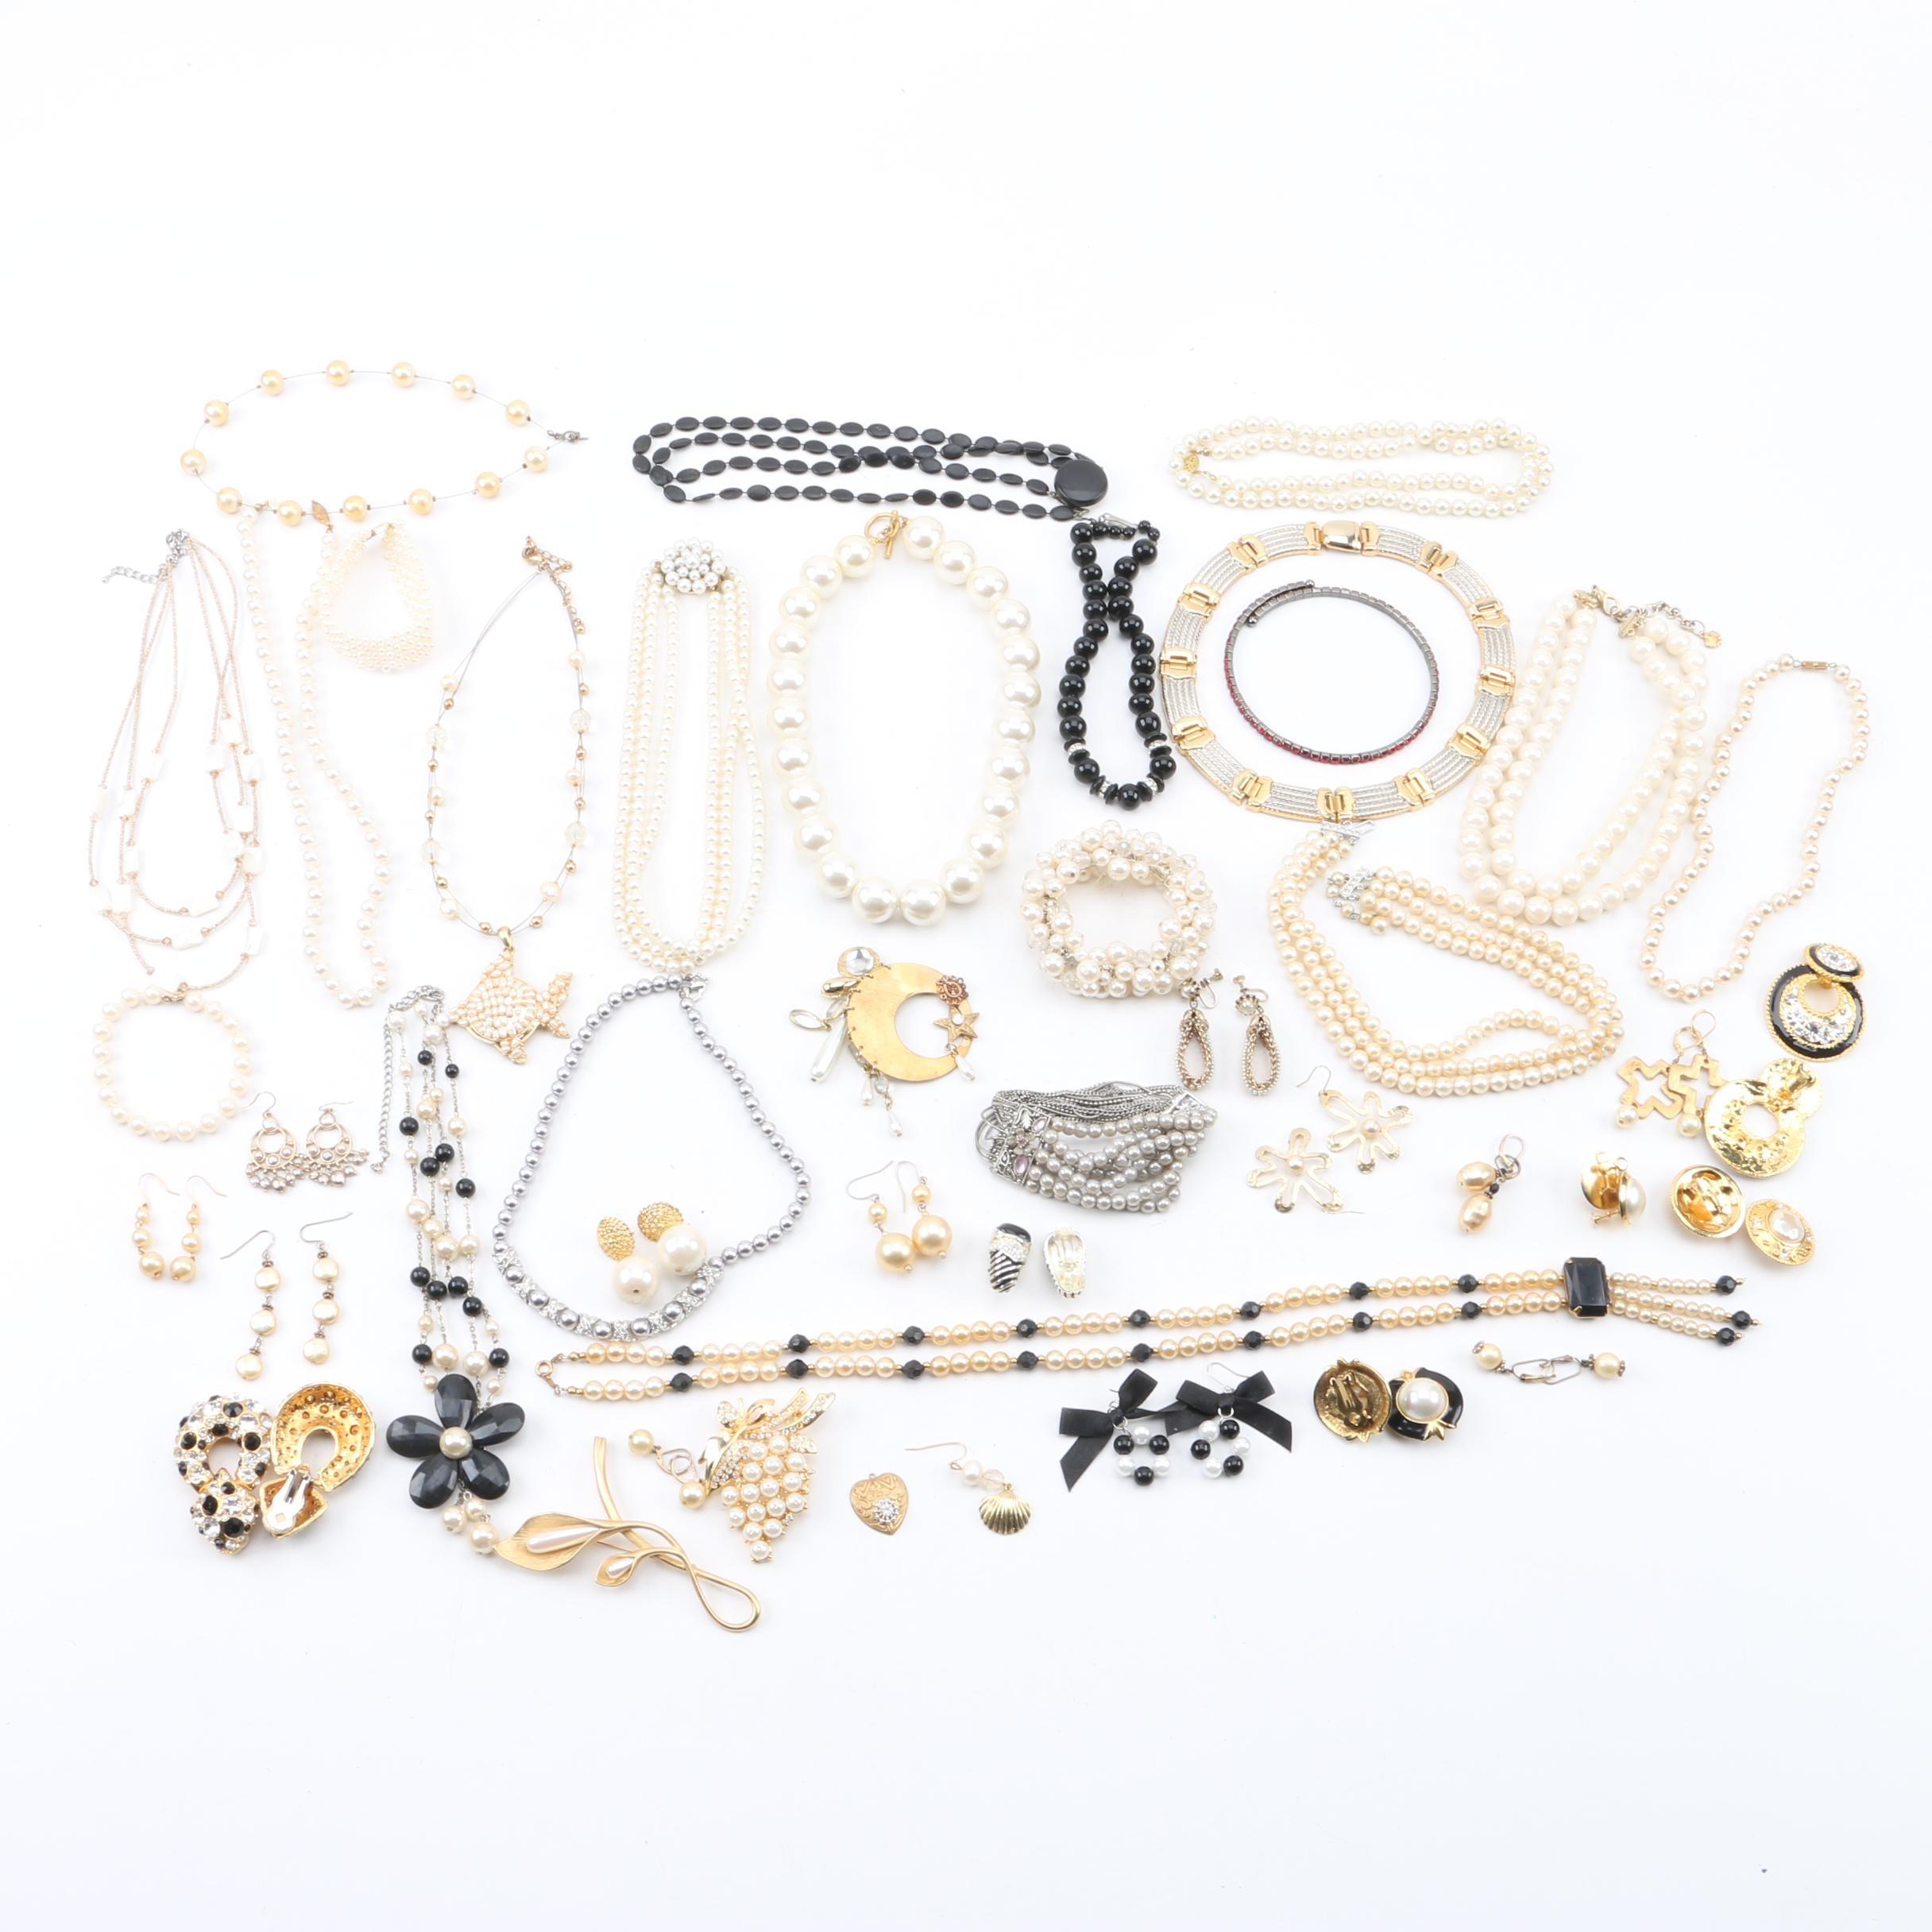 Jewelry Assortment Including Cultured Pearls